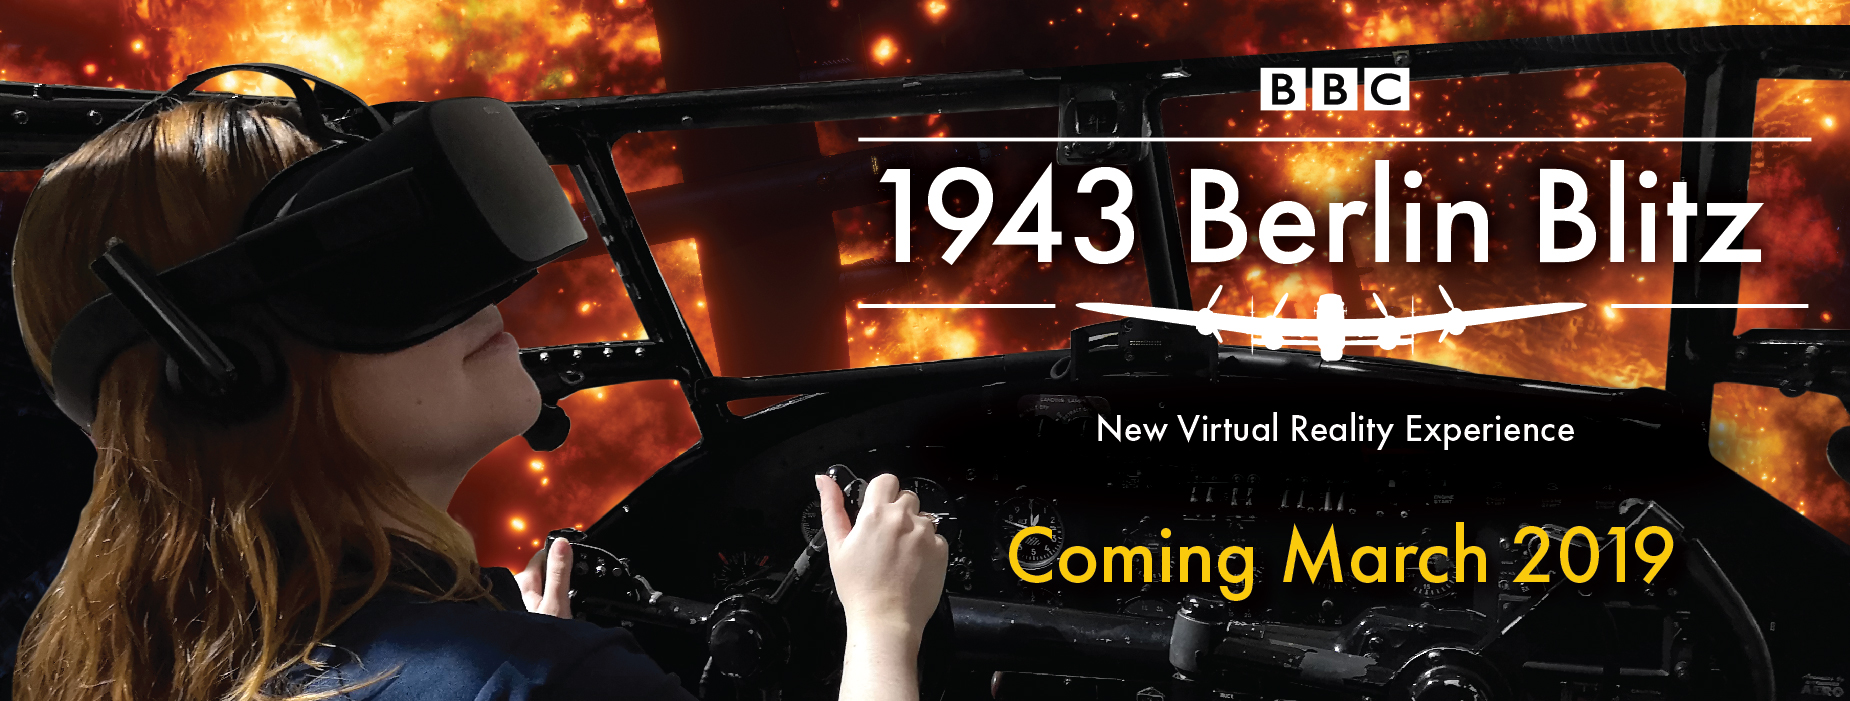 Poster for - Virtual Reality Experience - BBC 1943 Berlin Blitz